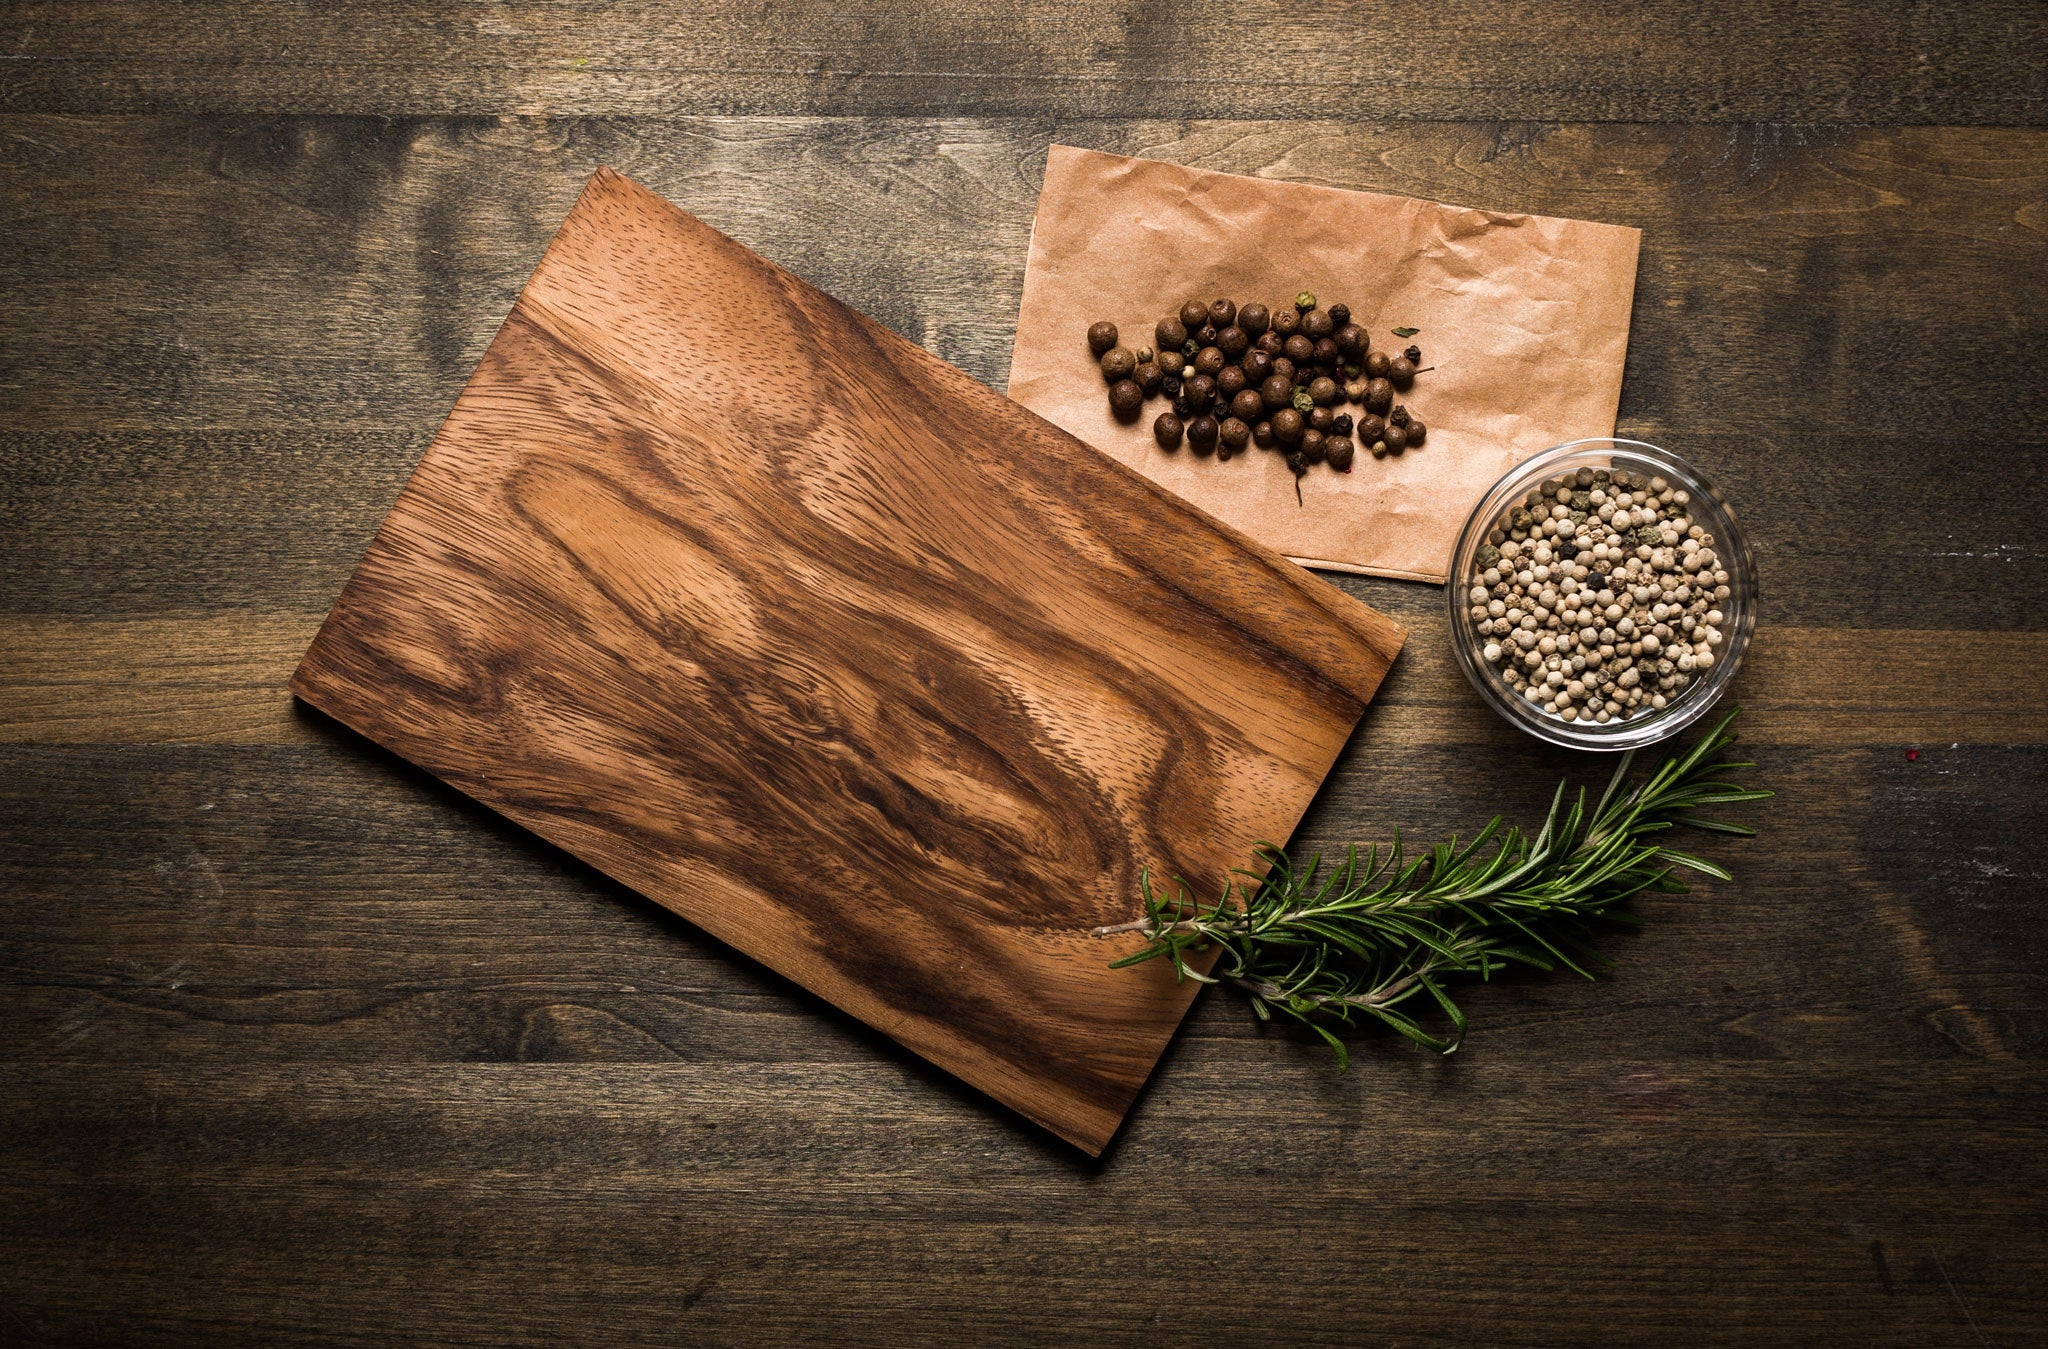 How To Care For Wooden Cutting Boards Www Trendshome Co